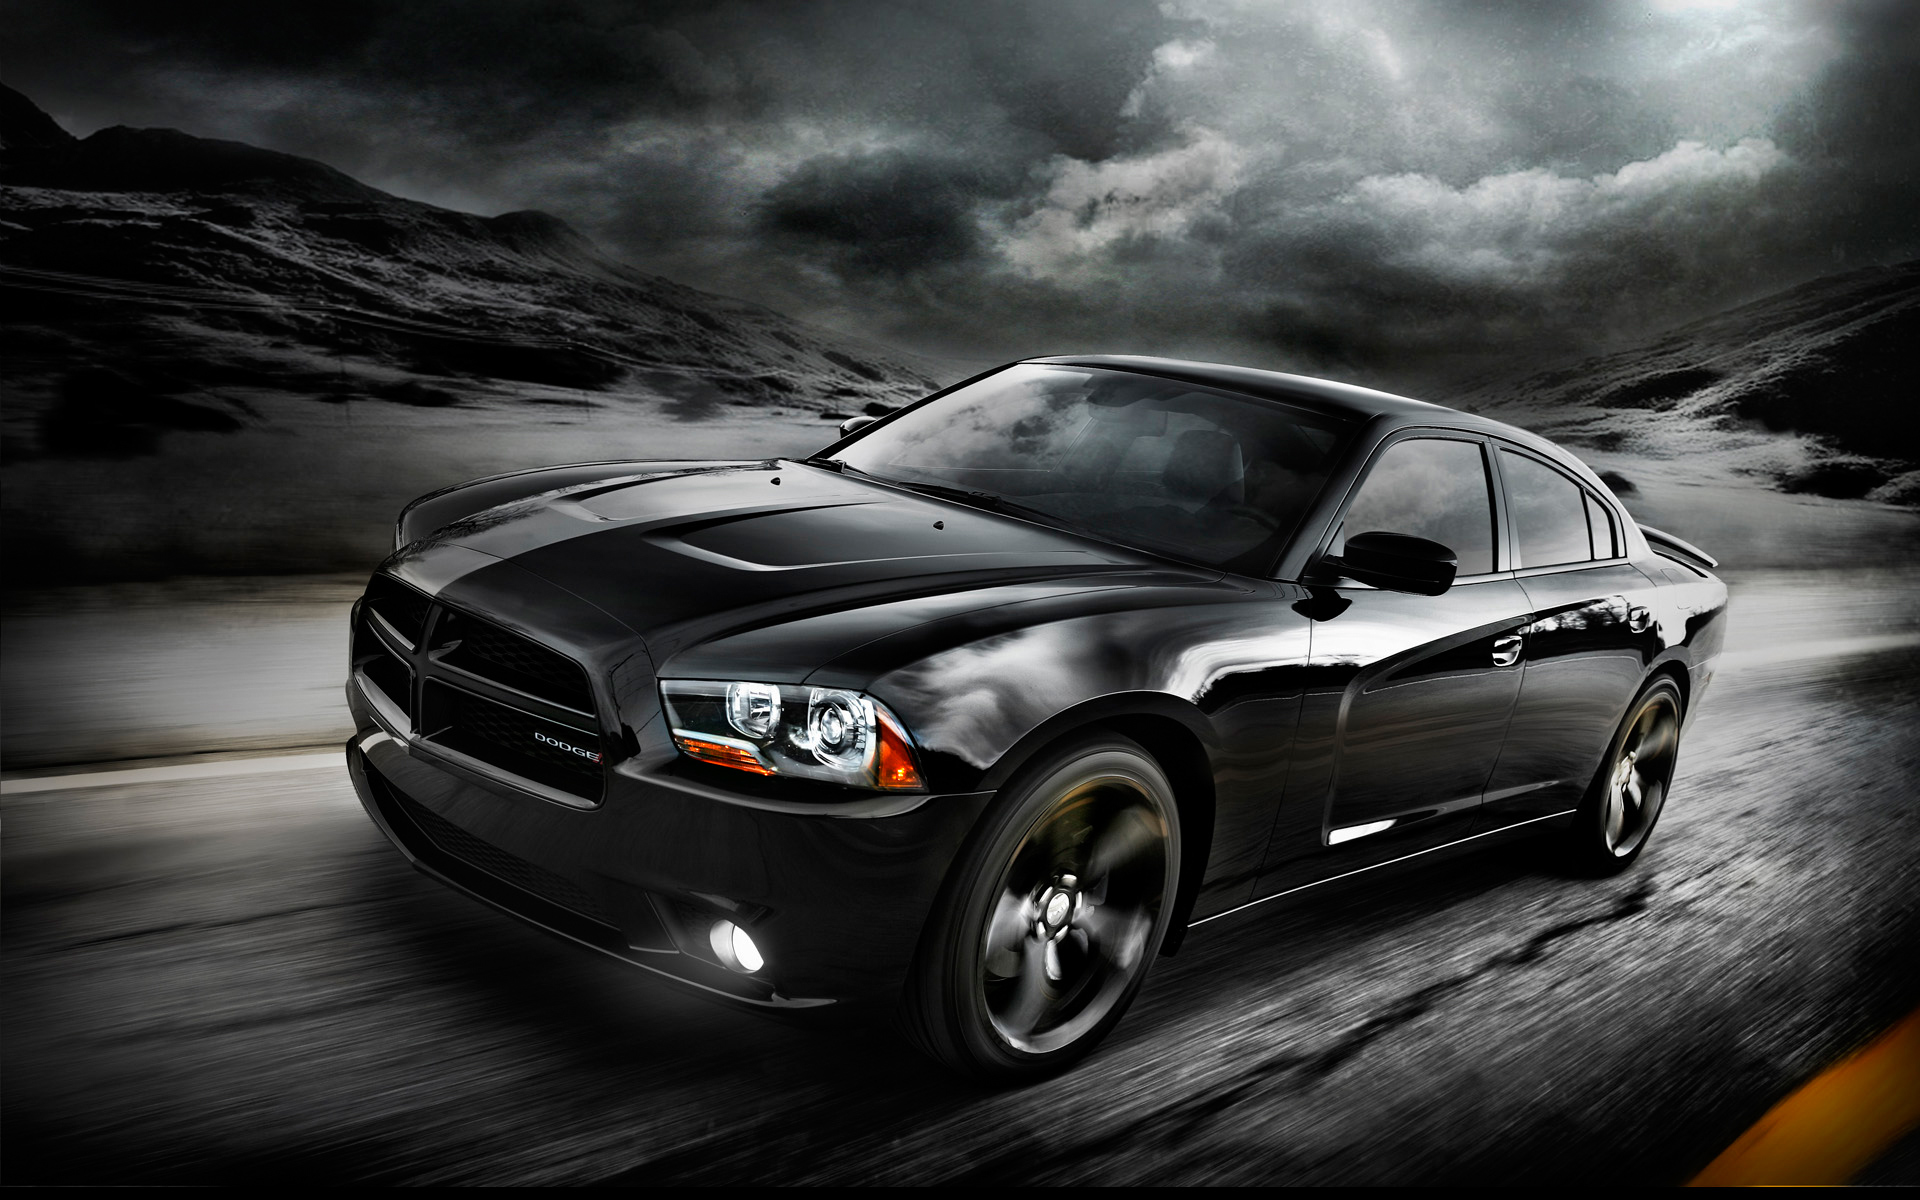 2012 Dodge Charger Wallpaper Hd Car Wallpapers